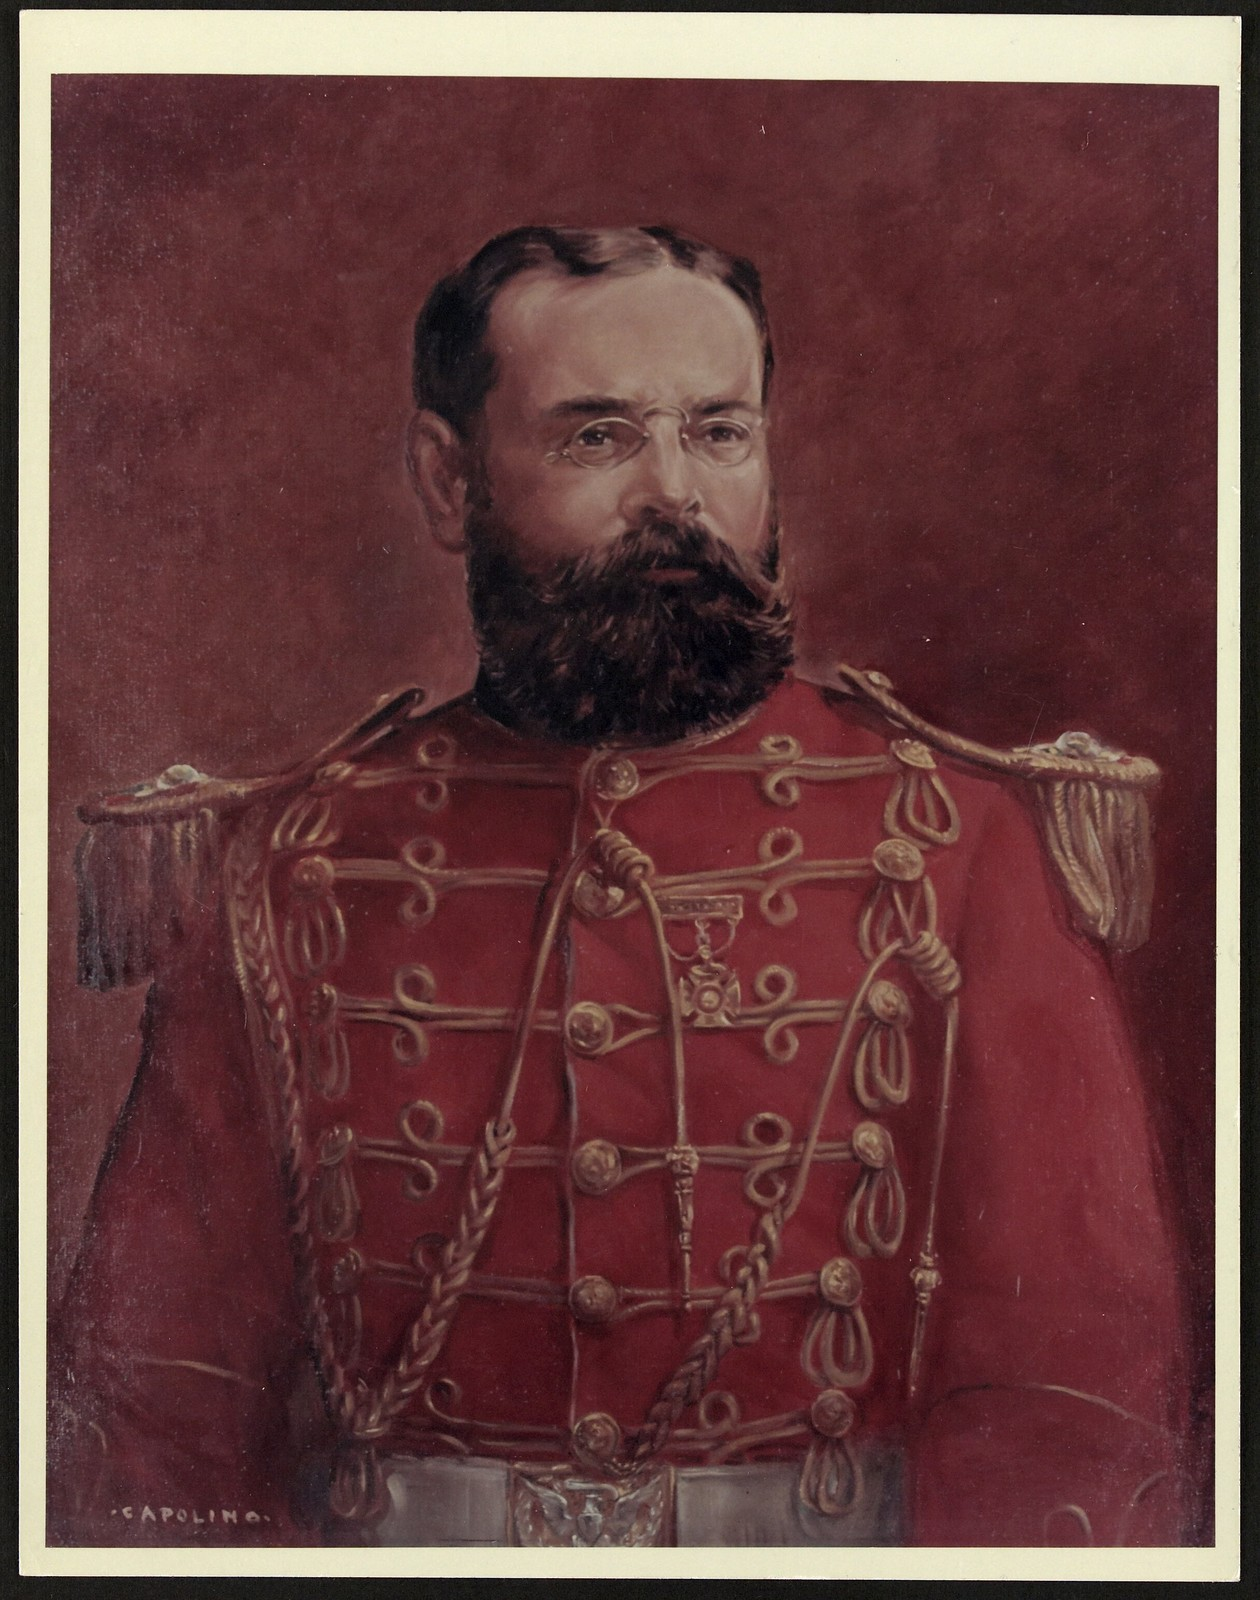 Painting of Sousa by Capolino